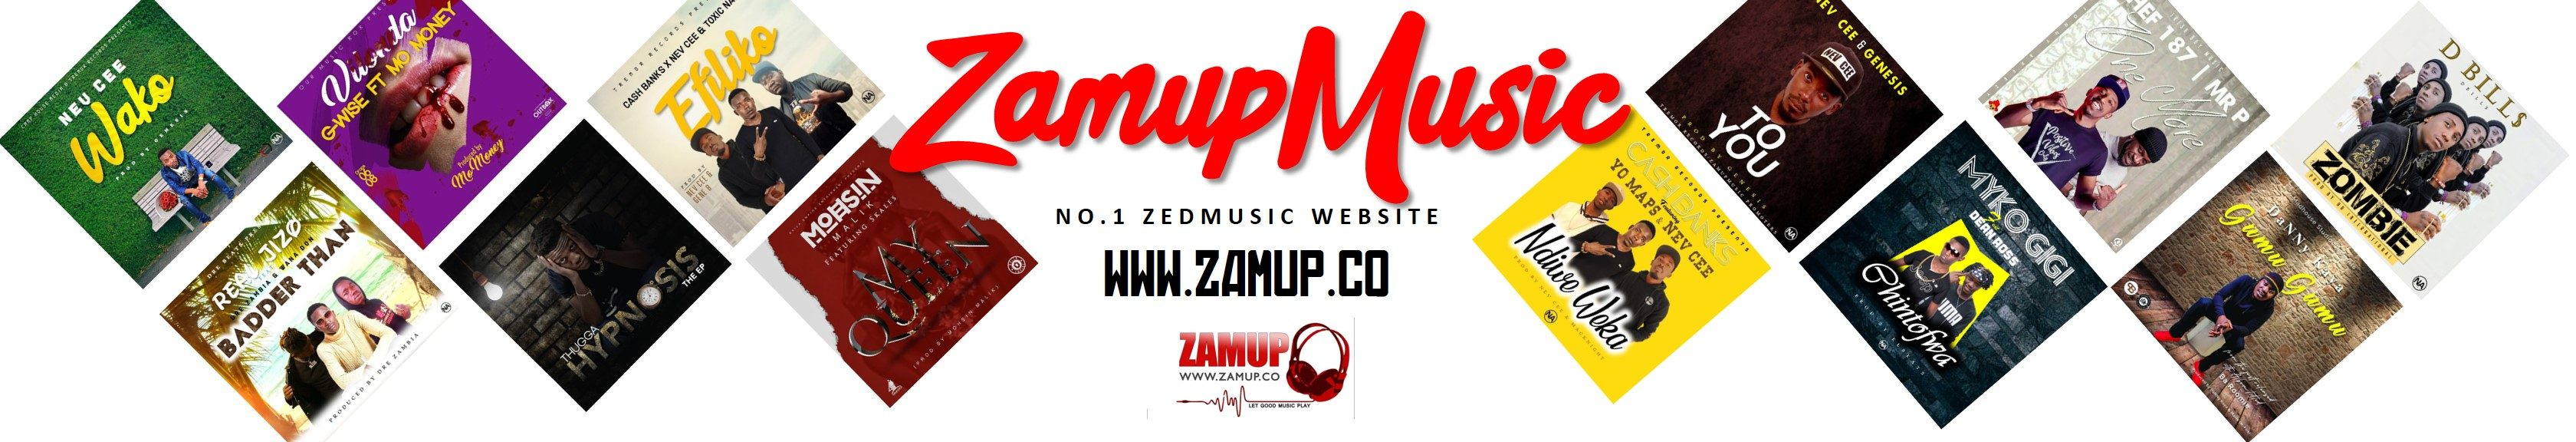 ZAMUP.CO